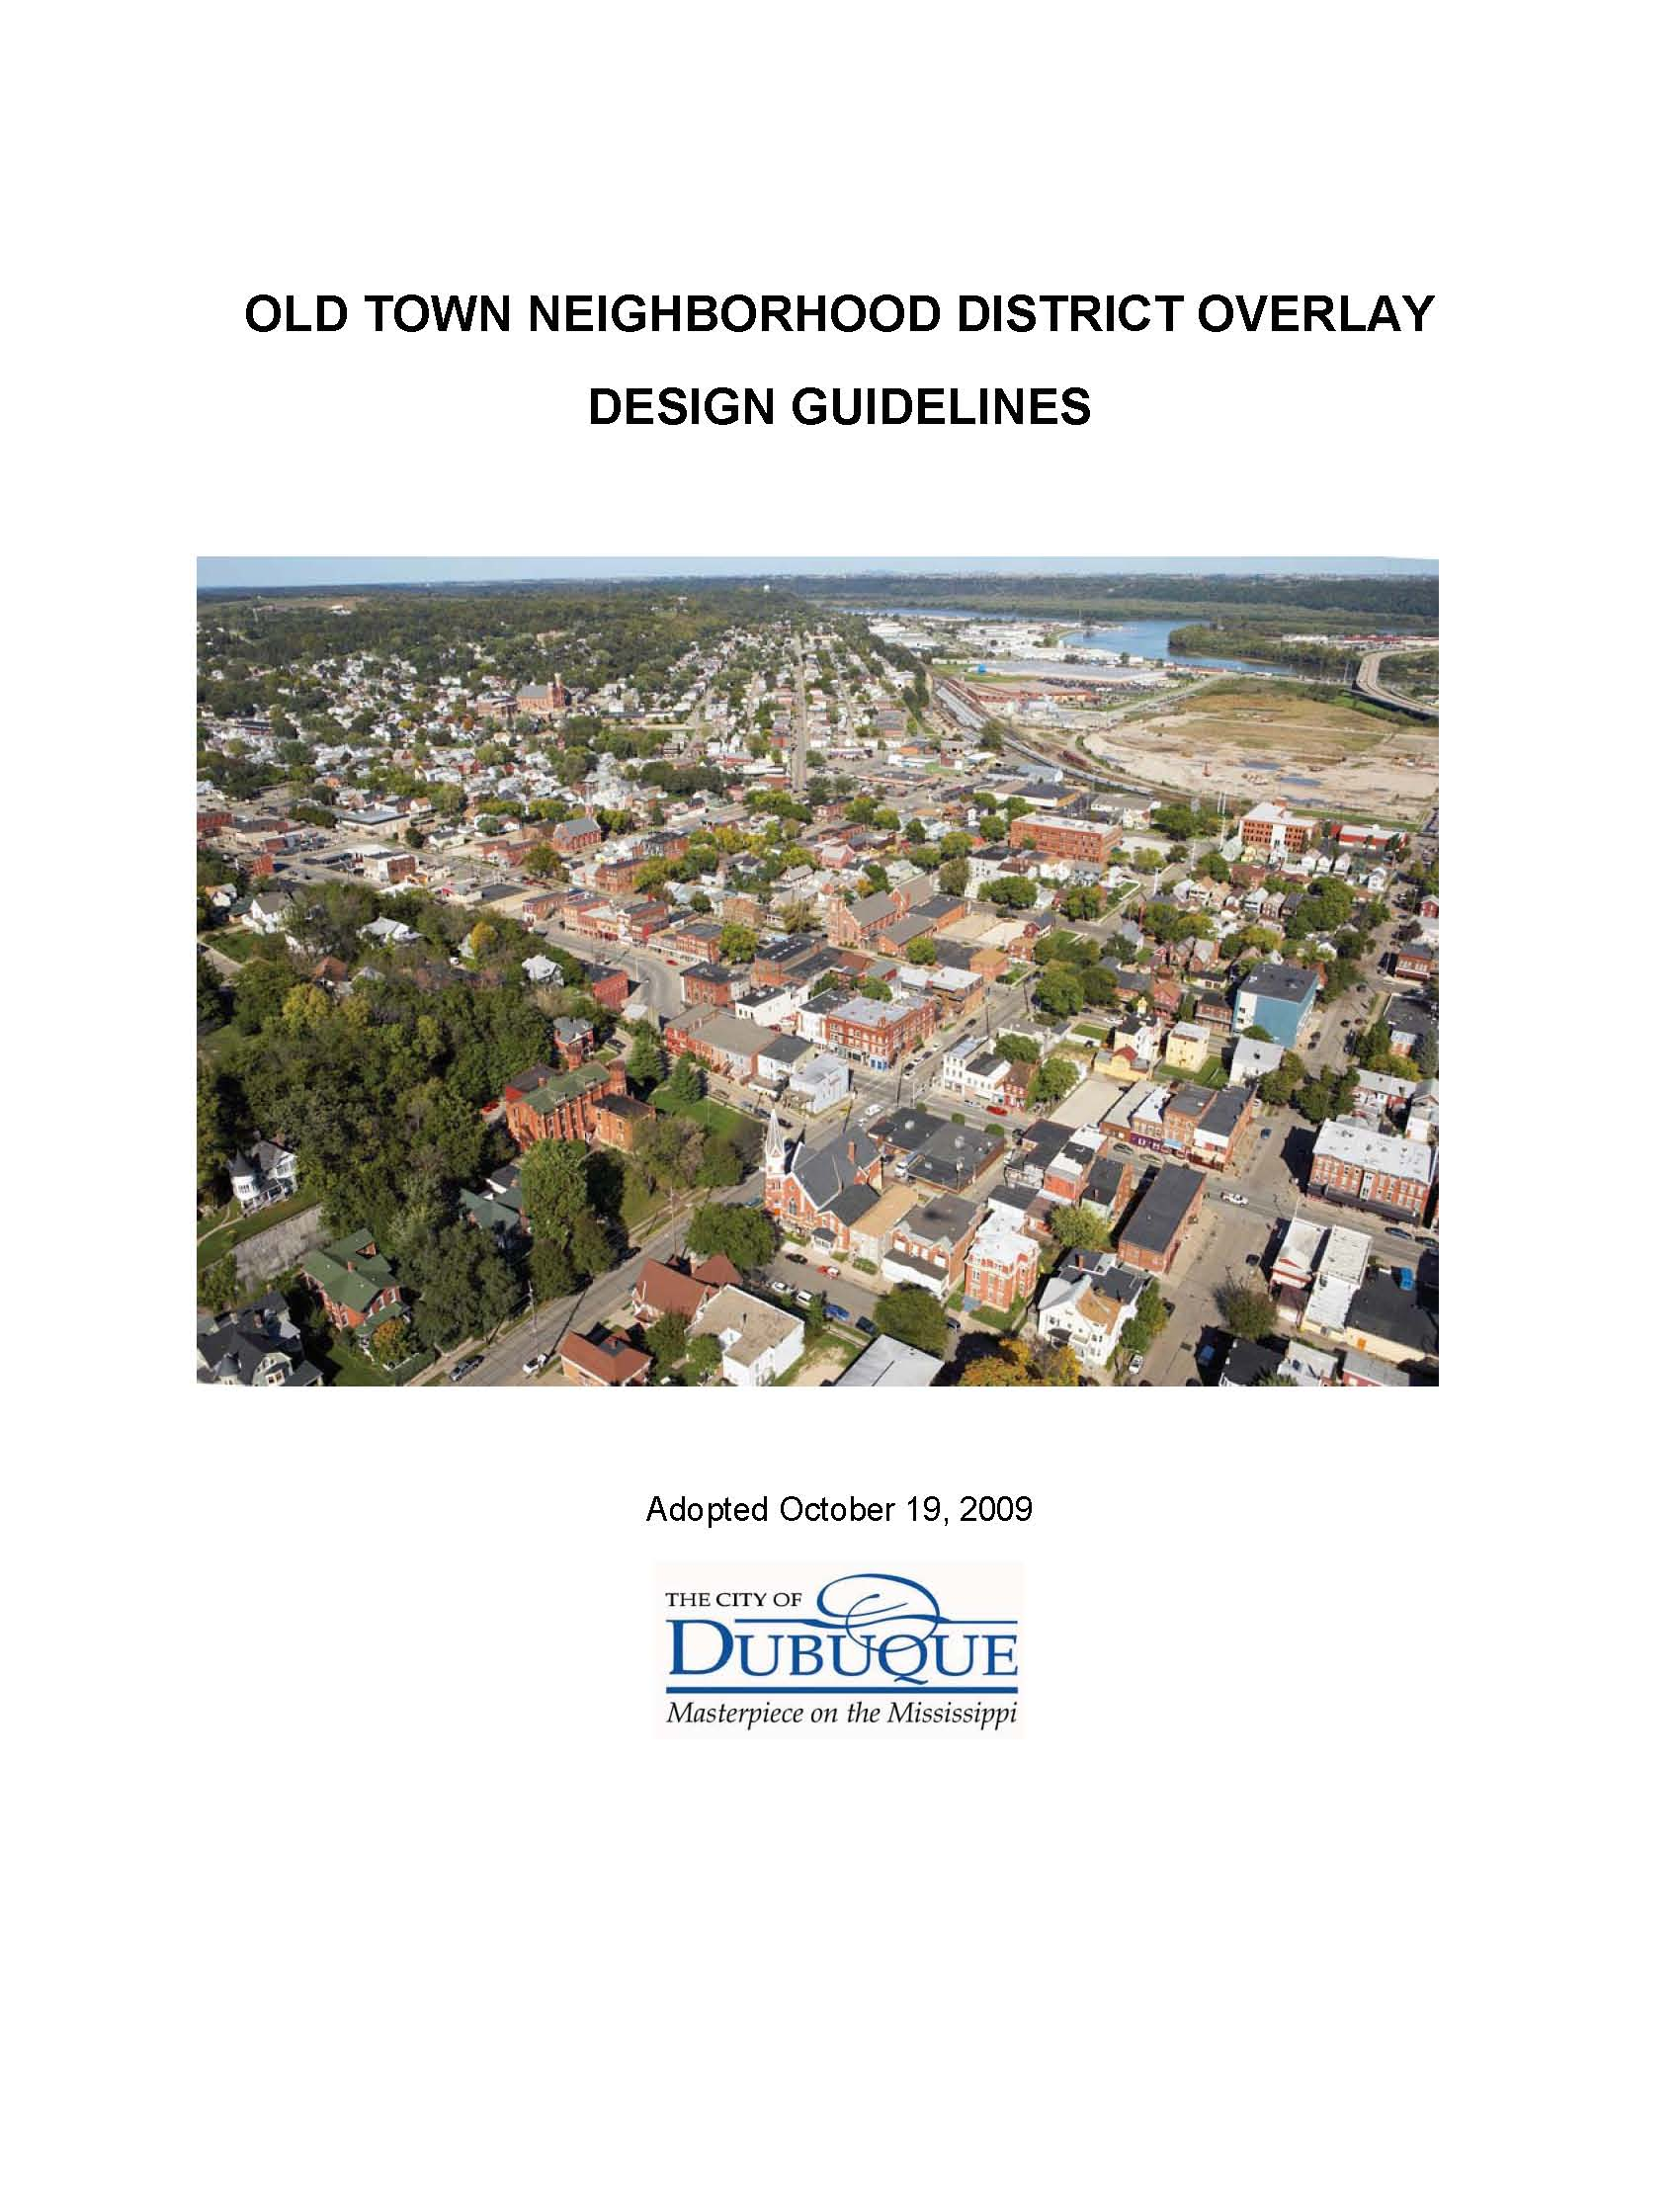 Old Town Neighborhood District Overlay Design Guidelines